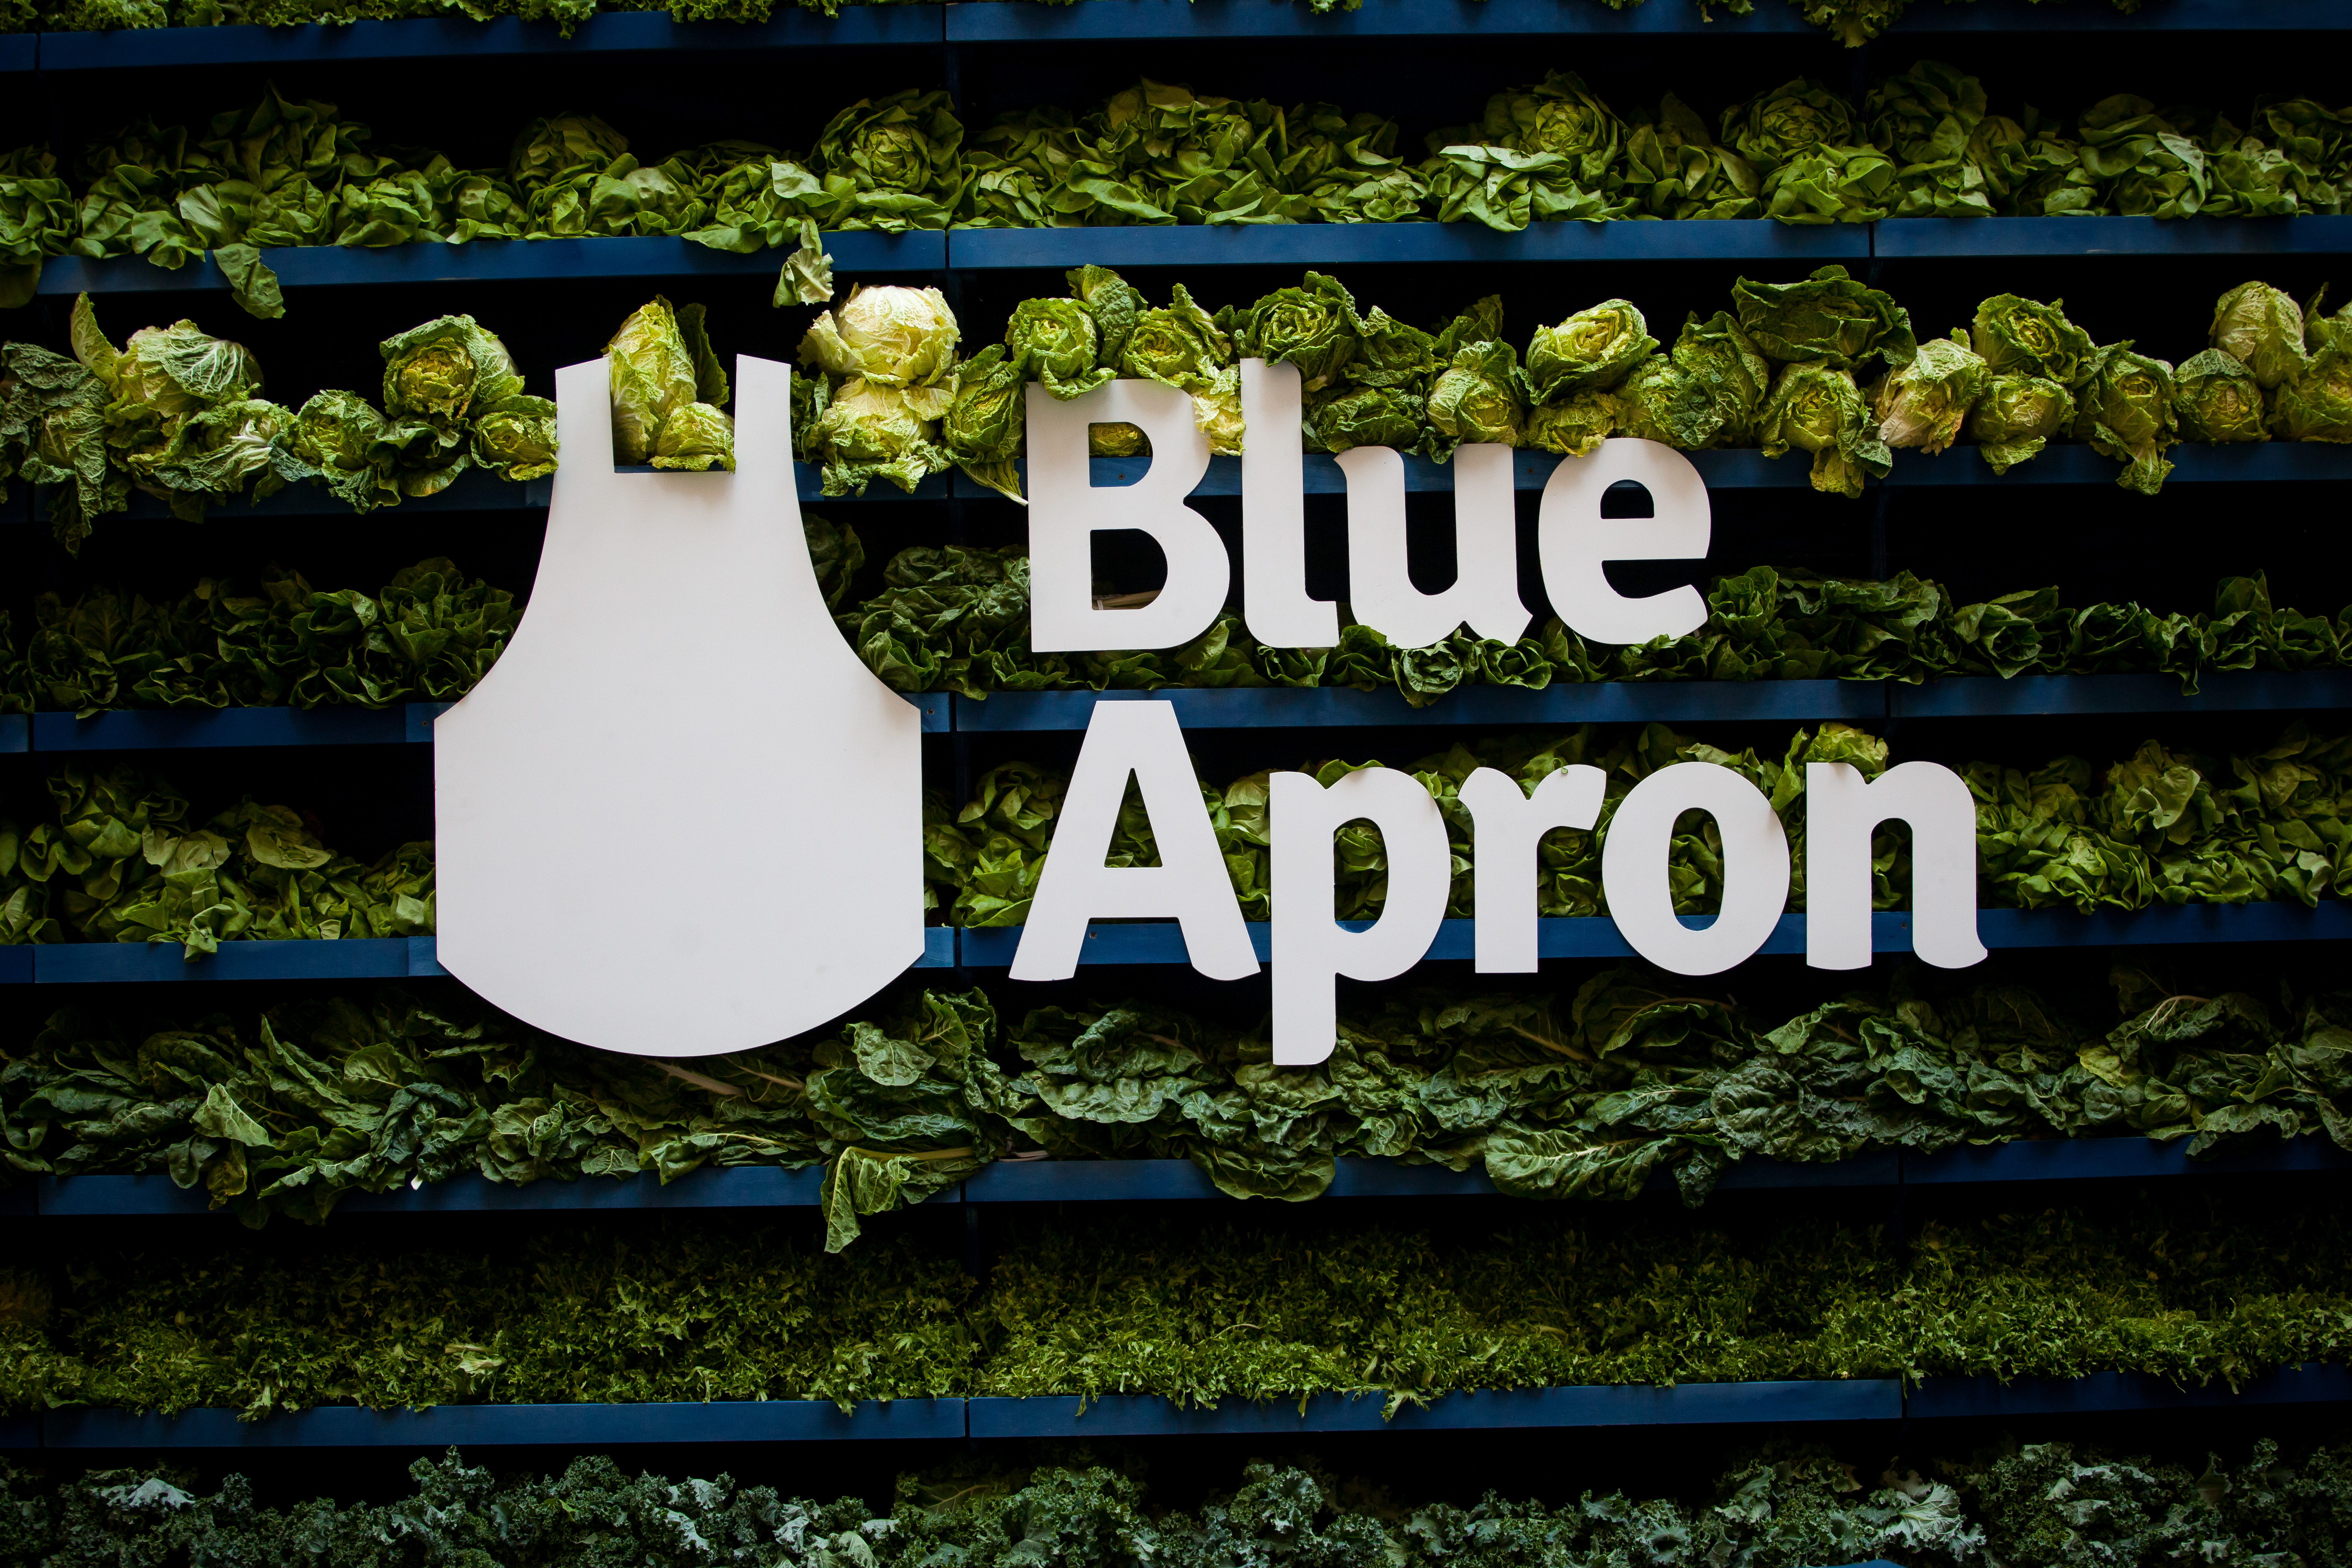 Blue Apron Climbs In Trading Debut After Slashing IPO Price